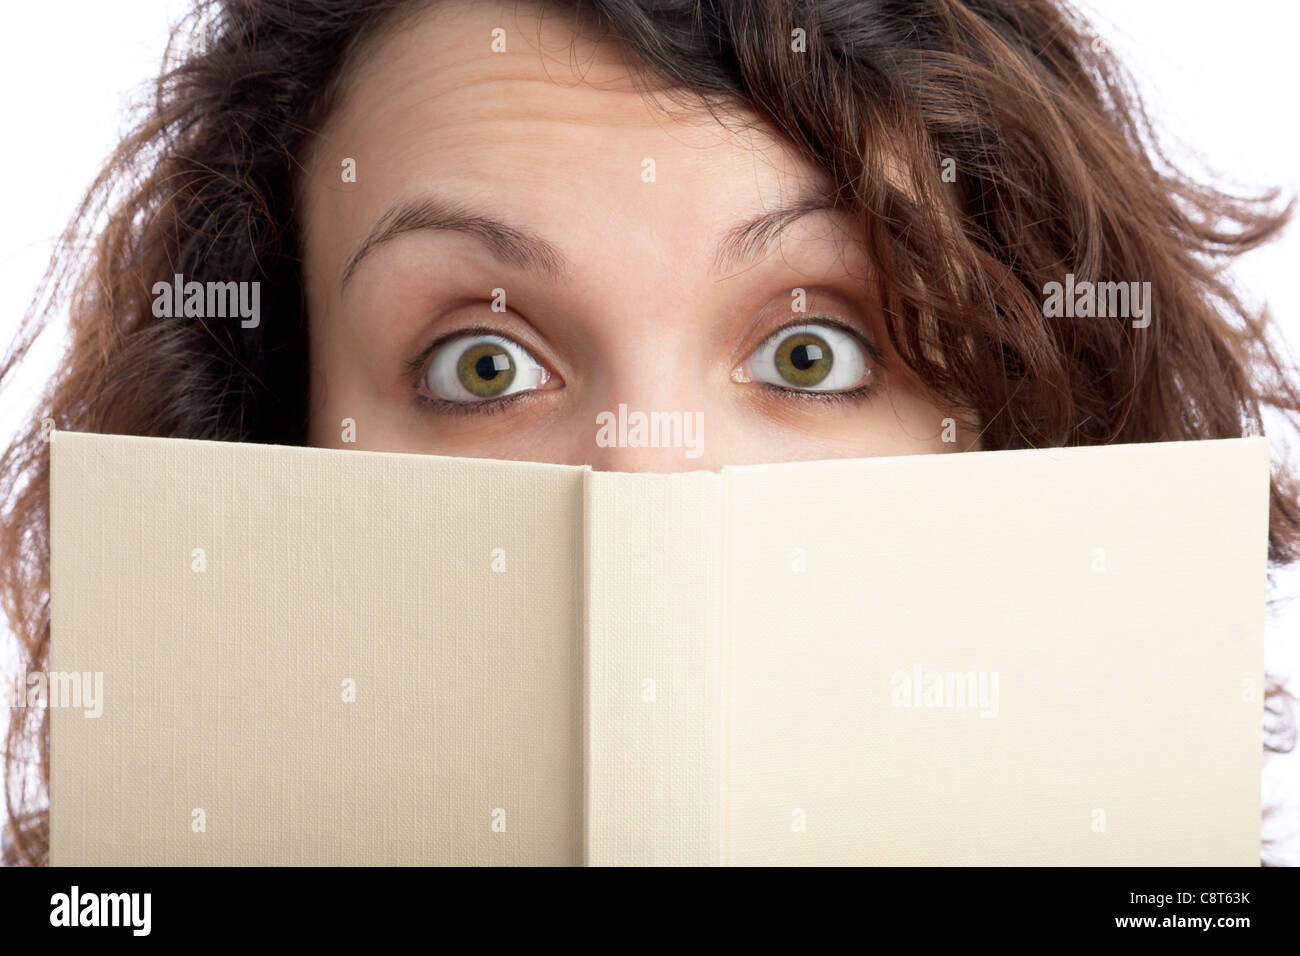 Surprised Woman with Book - Stock Image